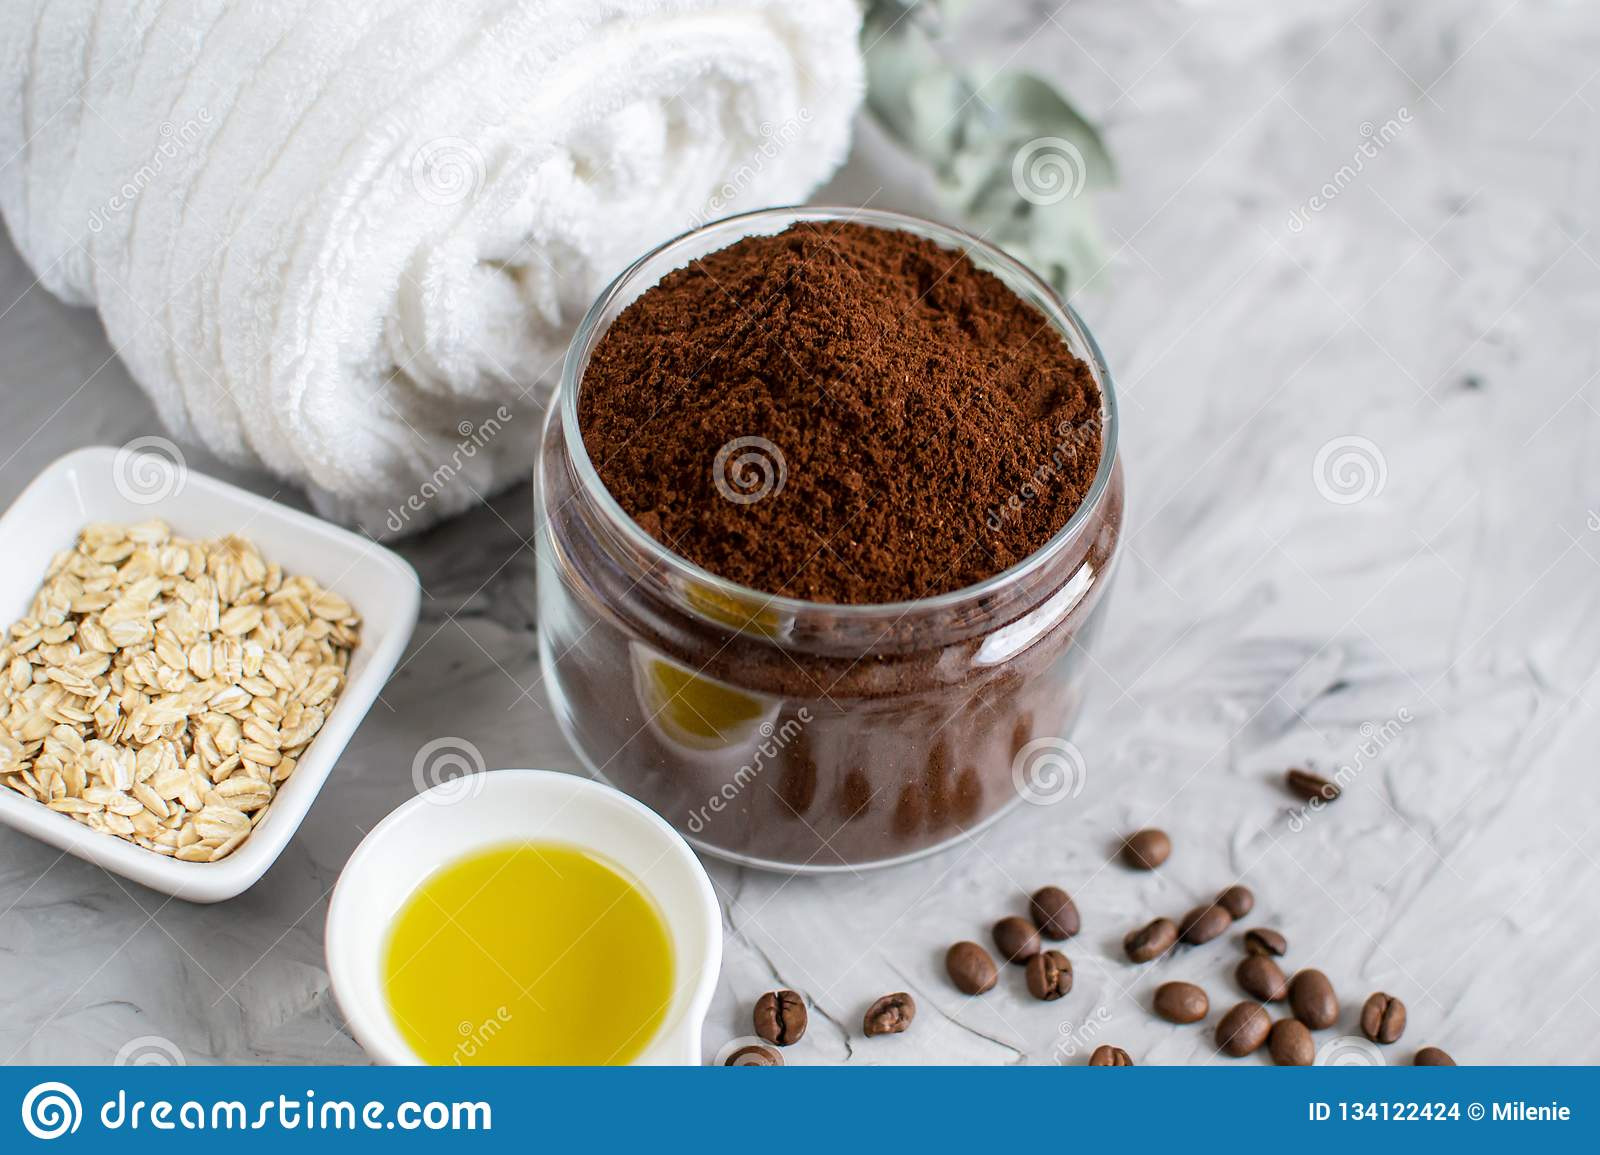 Natural Ingredients for Homemade Body Chocolate Coffee Oatmeal Sugar Scrub Oil Beauty SPA Concept